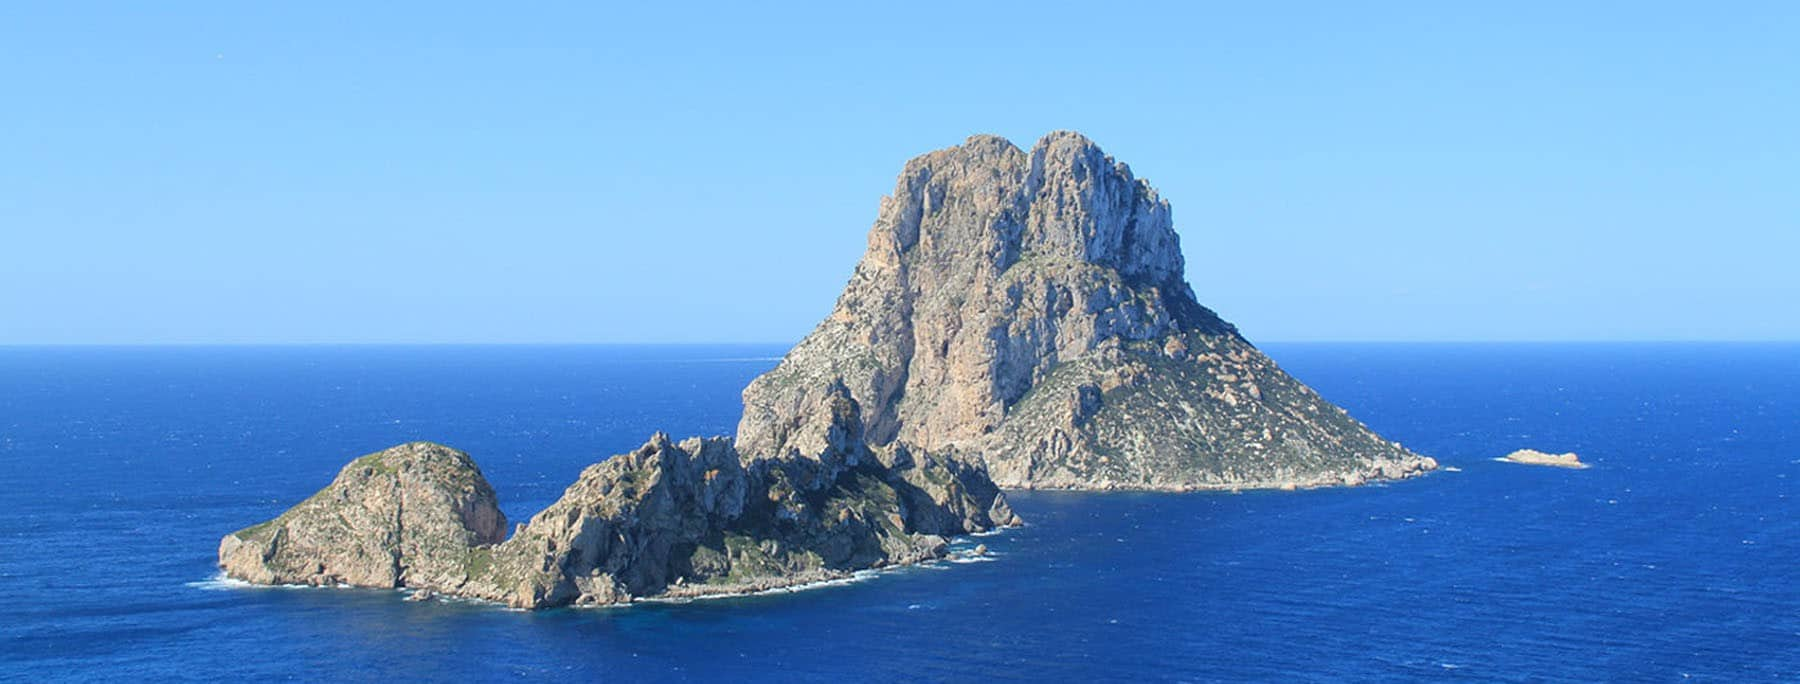 16398 further Es Vedra besides I Will Never Forget You moreover Paris Visited Tourist Attractions besides French Open 2017 Caroline Wozniacki David Lee Roland Garros Happy. on romantic time